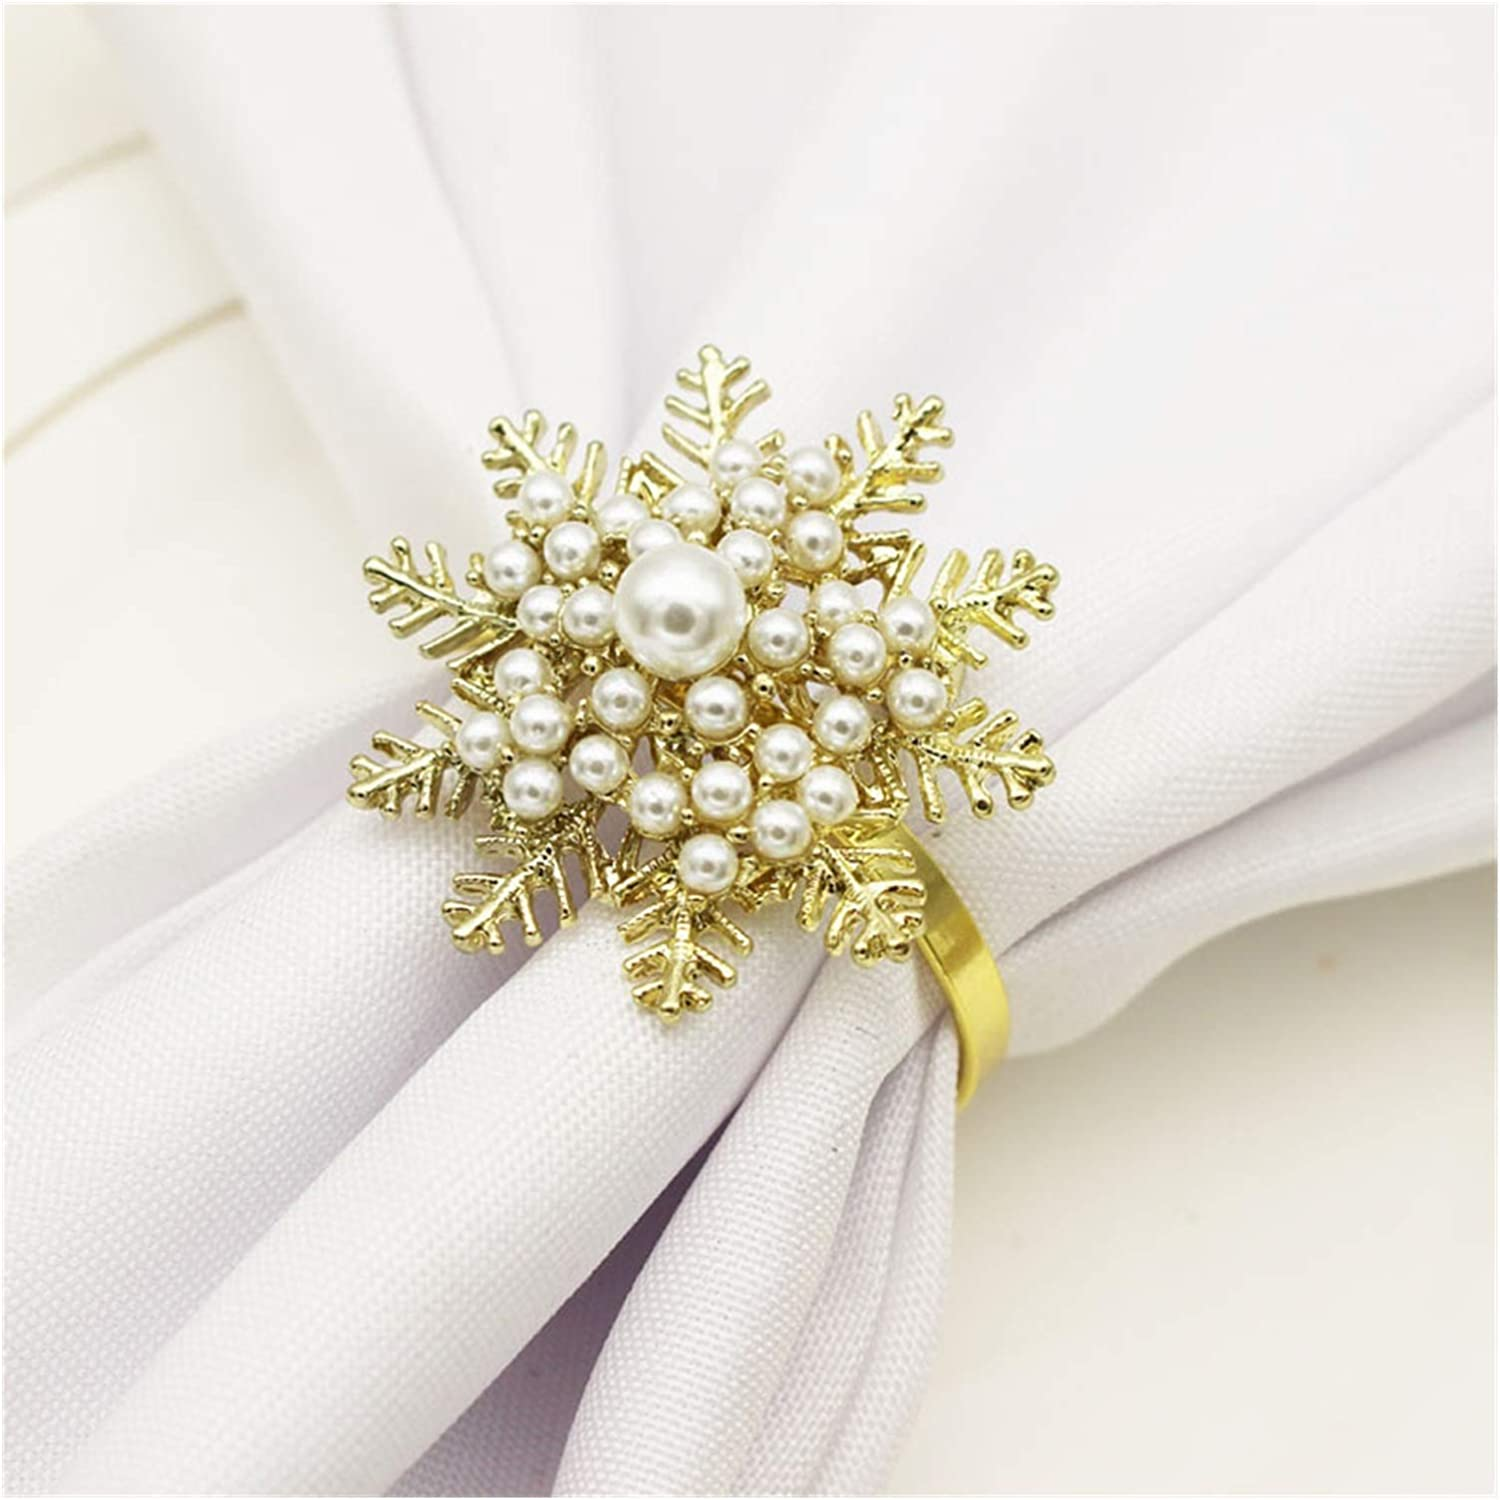 LAIQIAN Spiral Napkin Rings 2021 spring and summer shopping new 12PC D Day Hotel Tableware Christmas